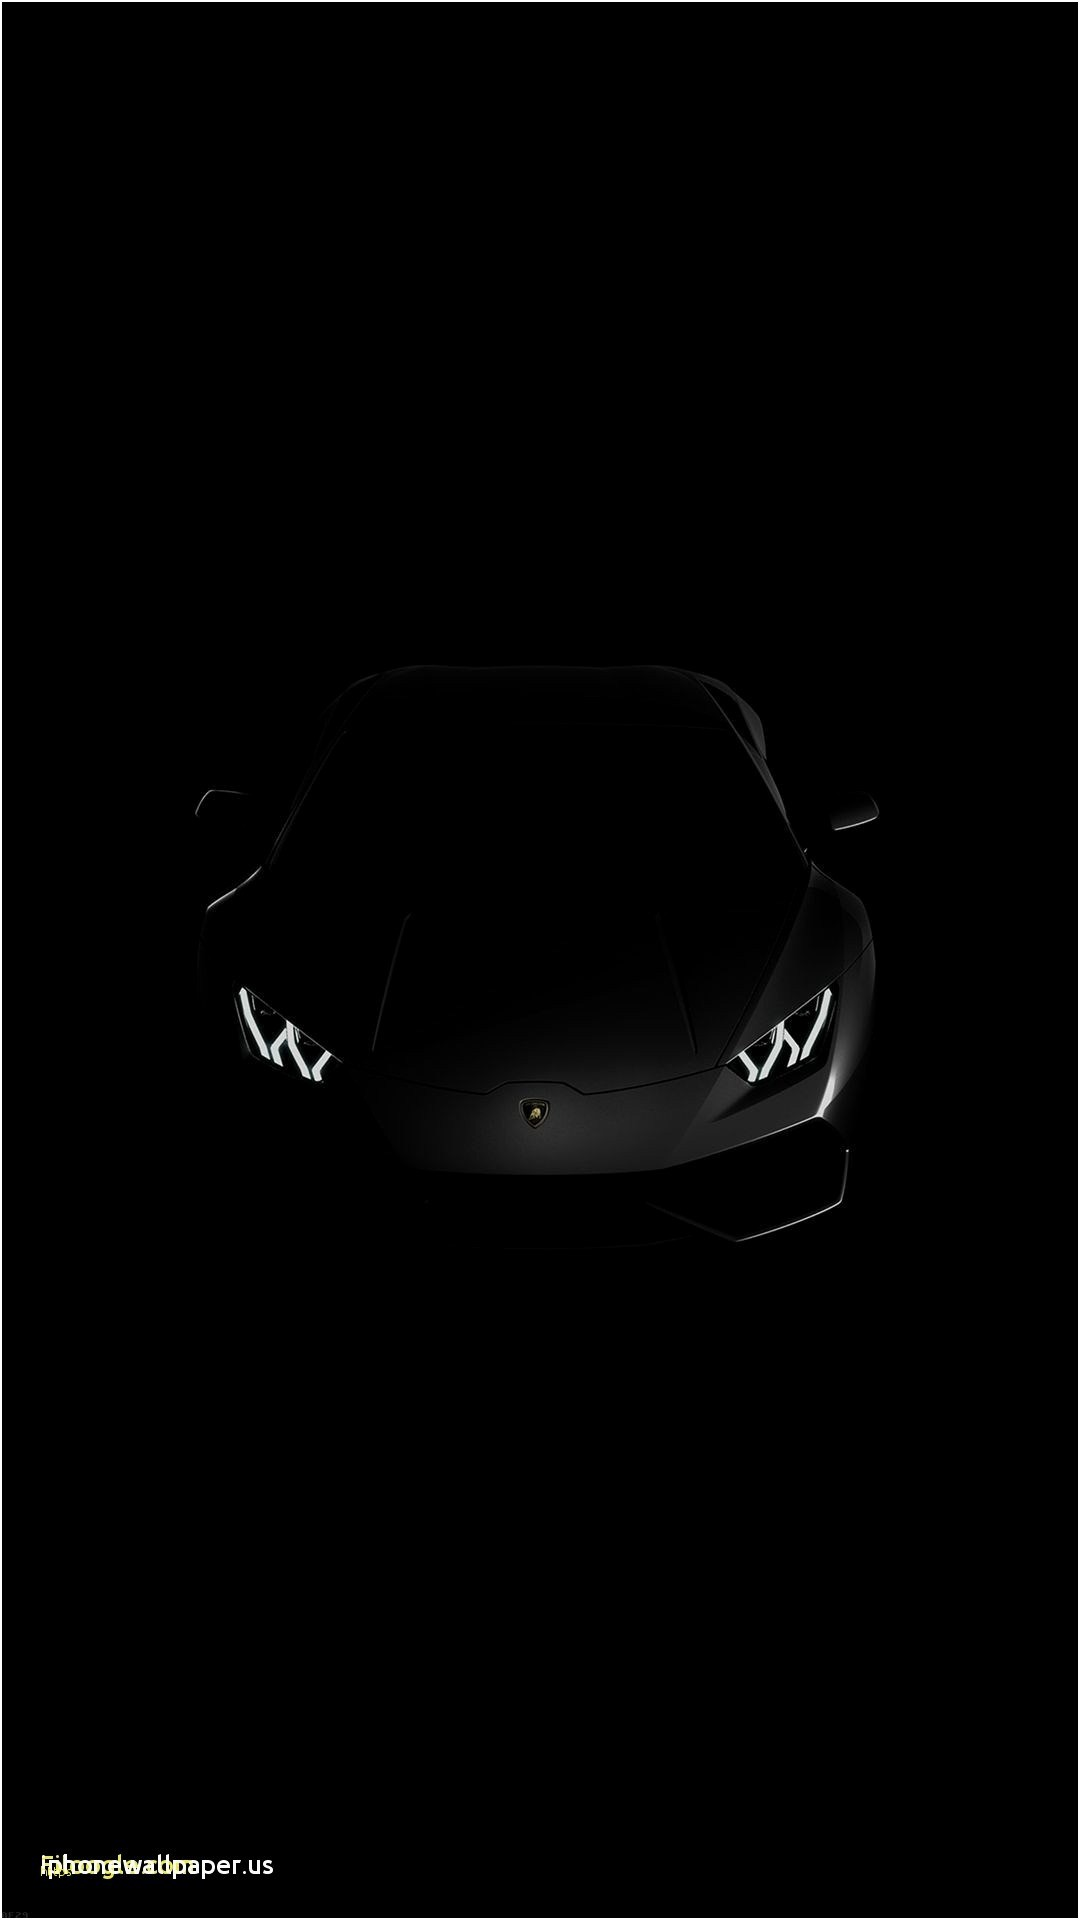 1080x1920 Exotic Wallpapers Awesome Image Lamborghini iPhone Wallpaper